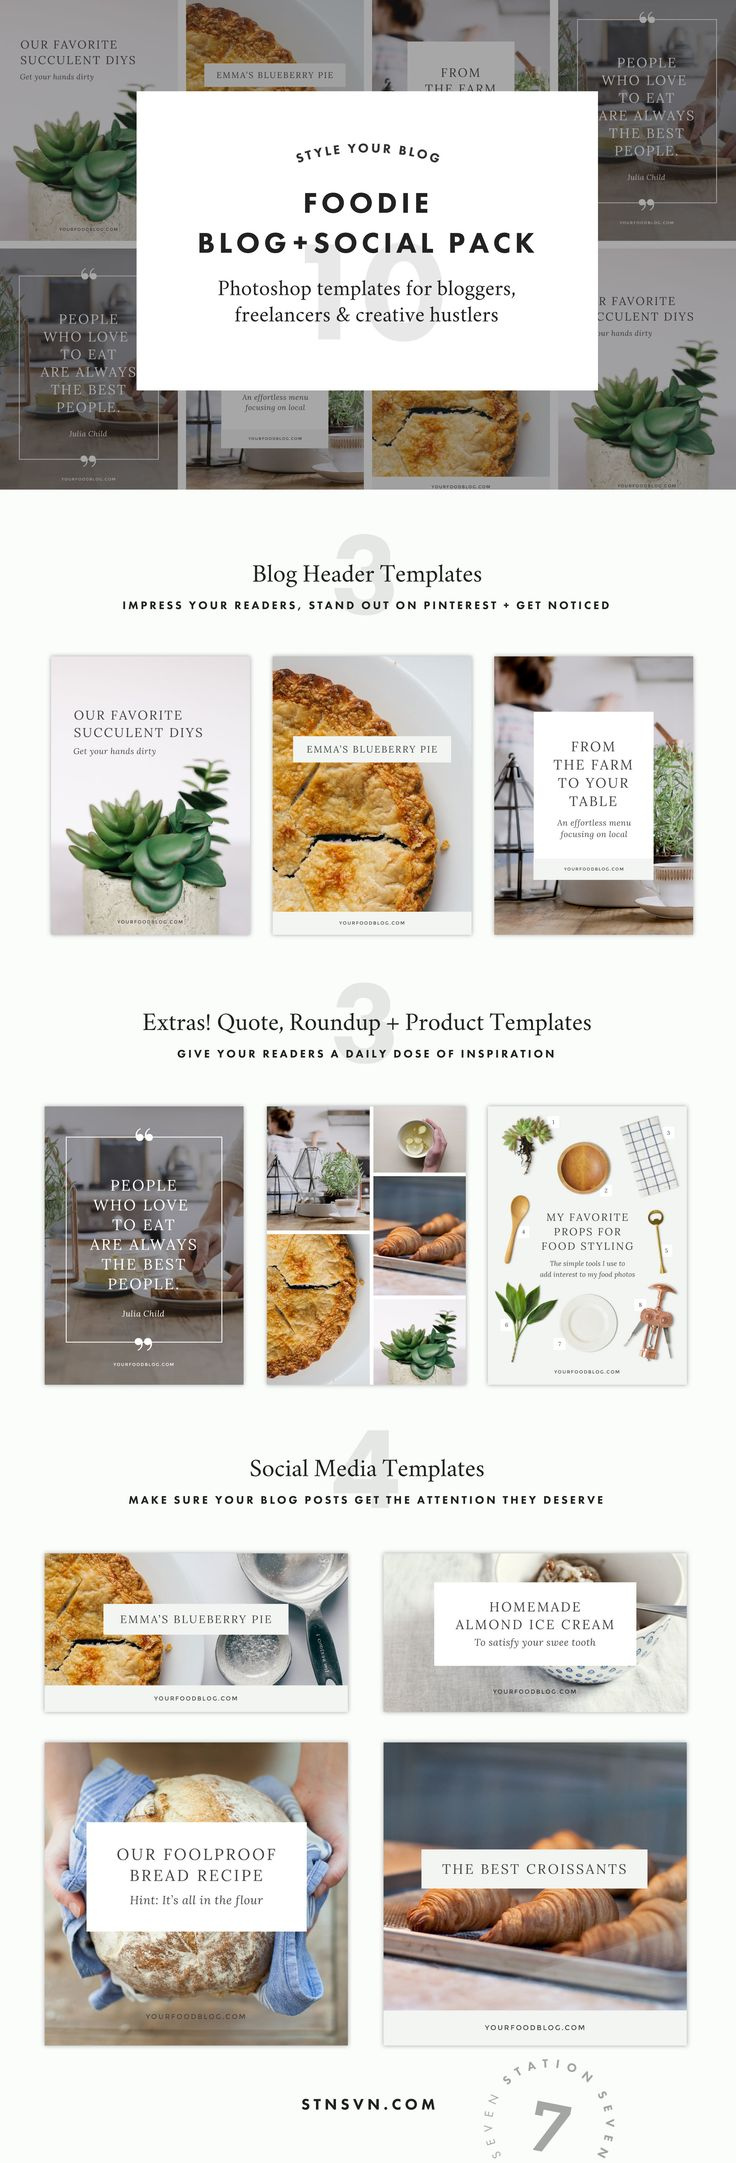 Foodie Blog + Social Graphic Pack. Say hello to gorgeous, minimalist graphics that hook your readers. Create the perfect templates for your Pinterest, Instagram, and blog headers and images.